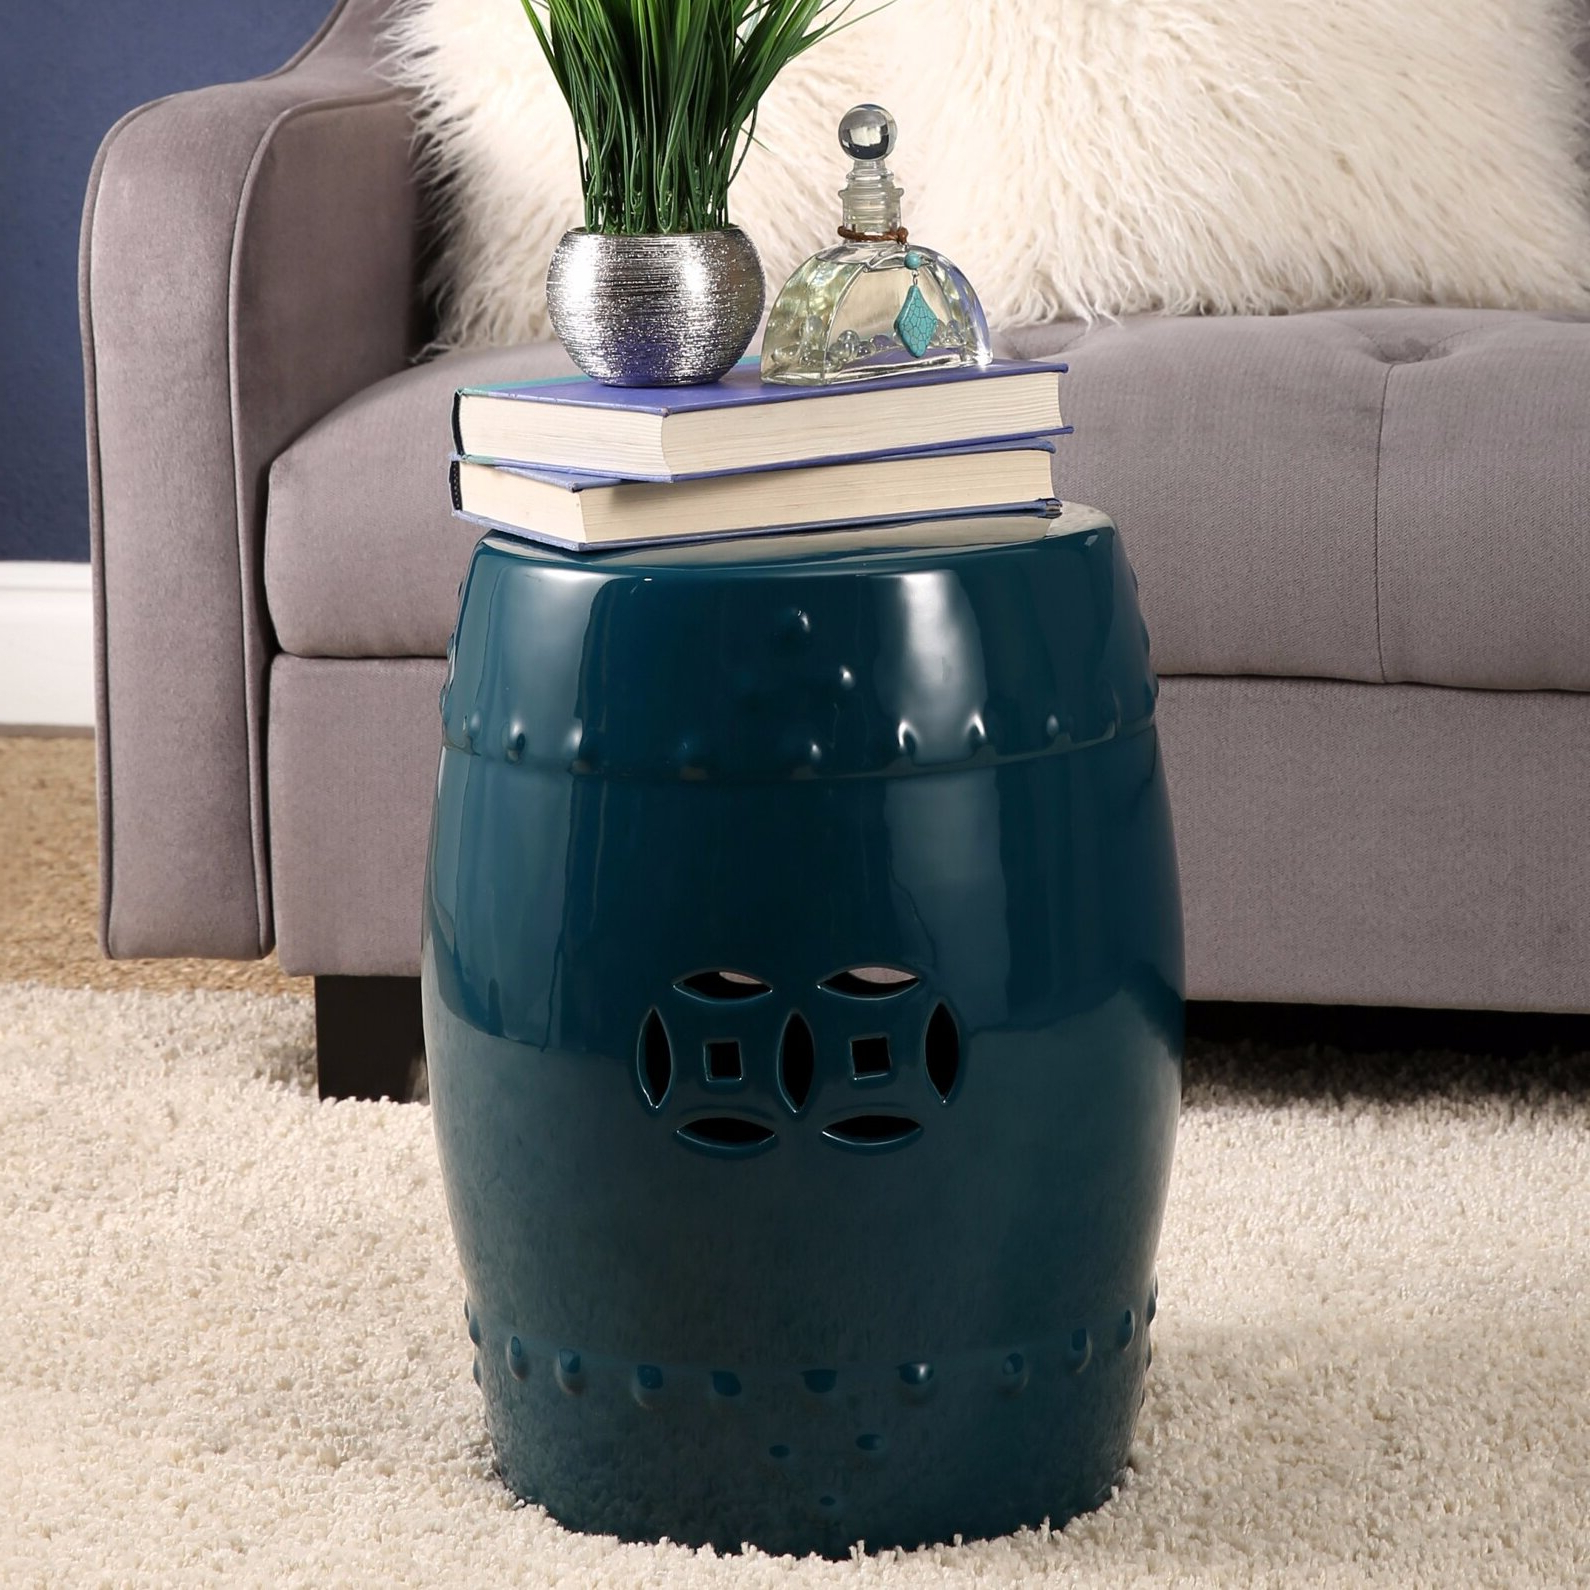 2020 Janke Floral Garden Stools Intended For Blue & Green Garden Stools You'll Love In (View 26 of 30)